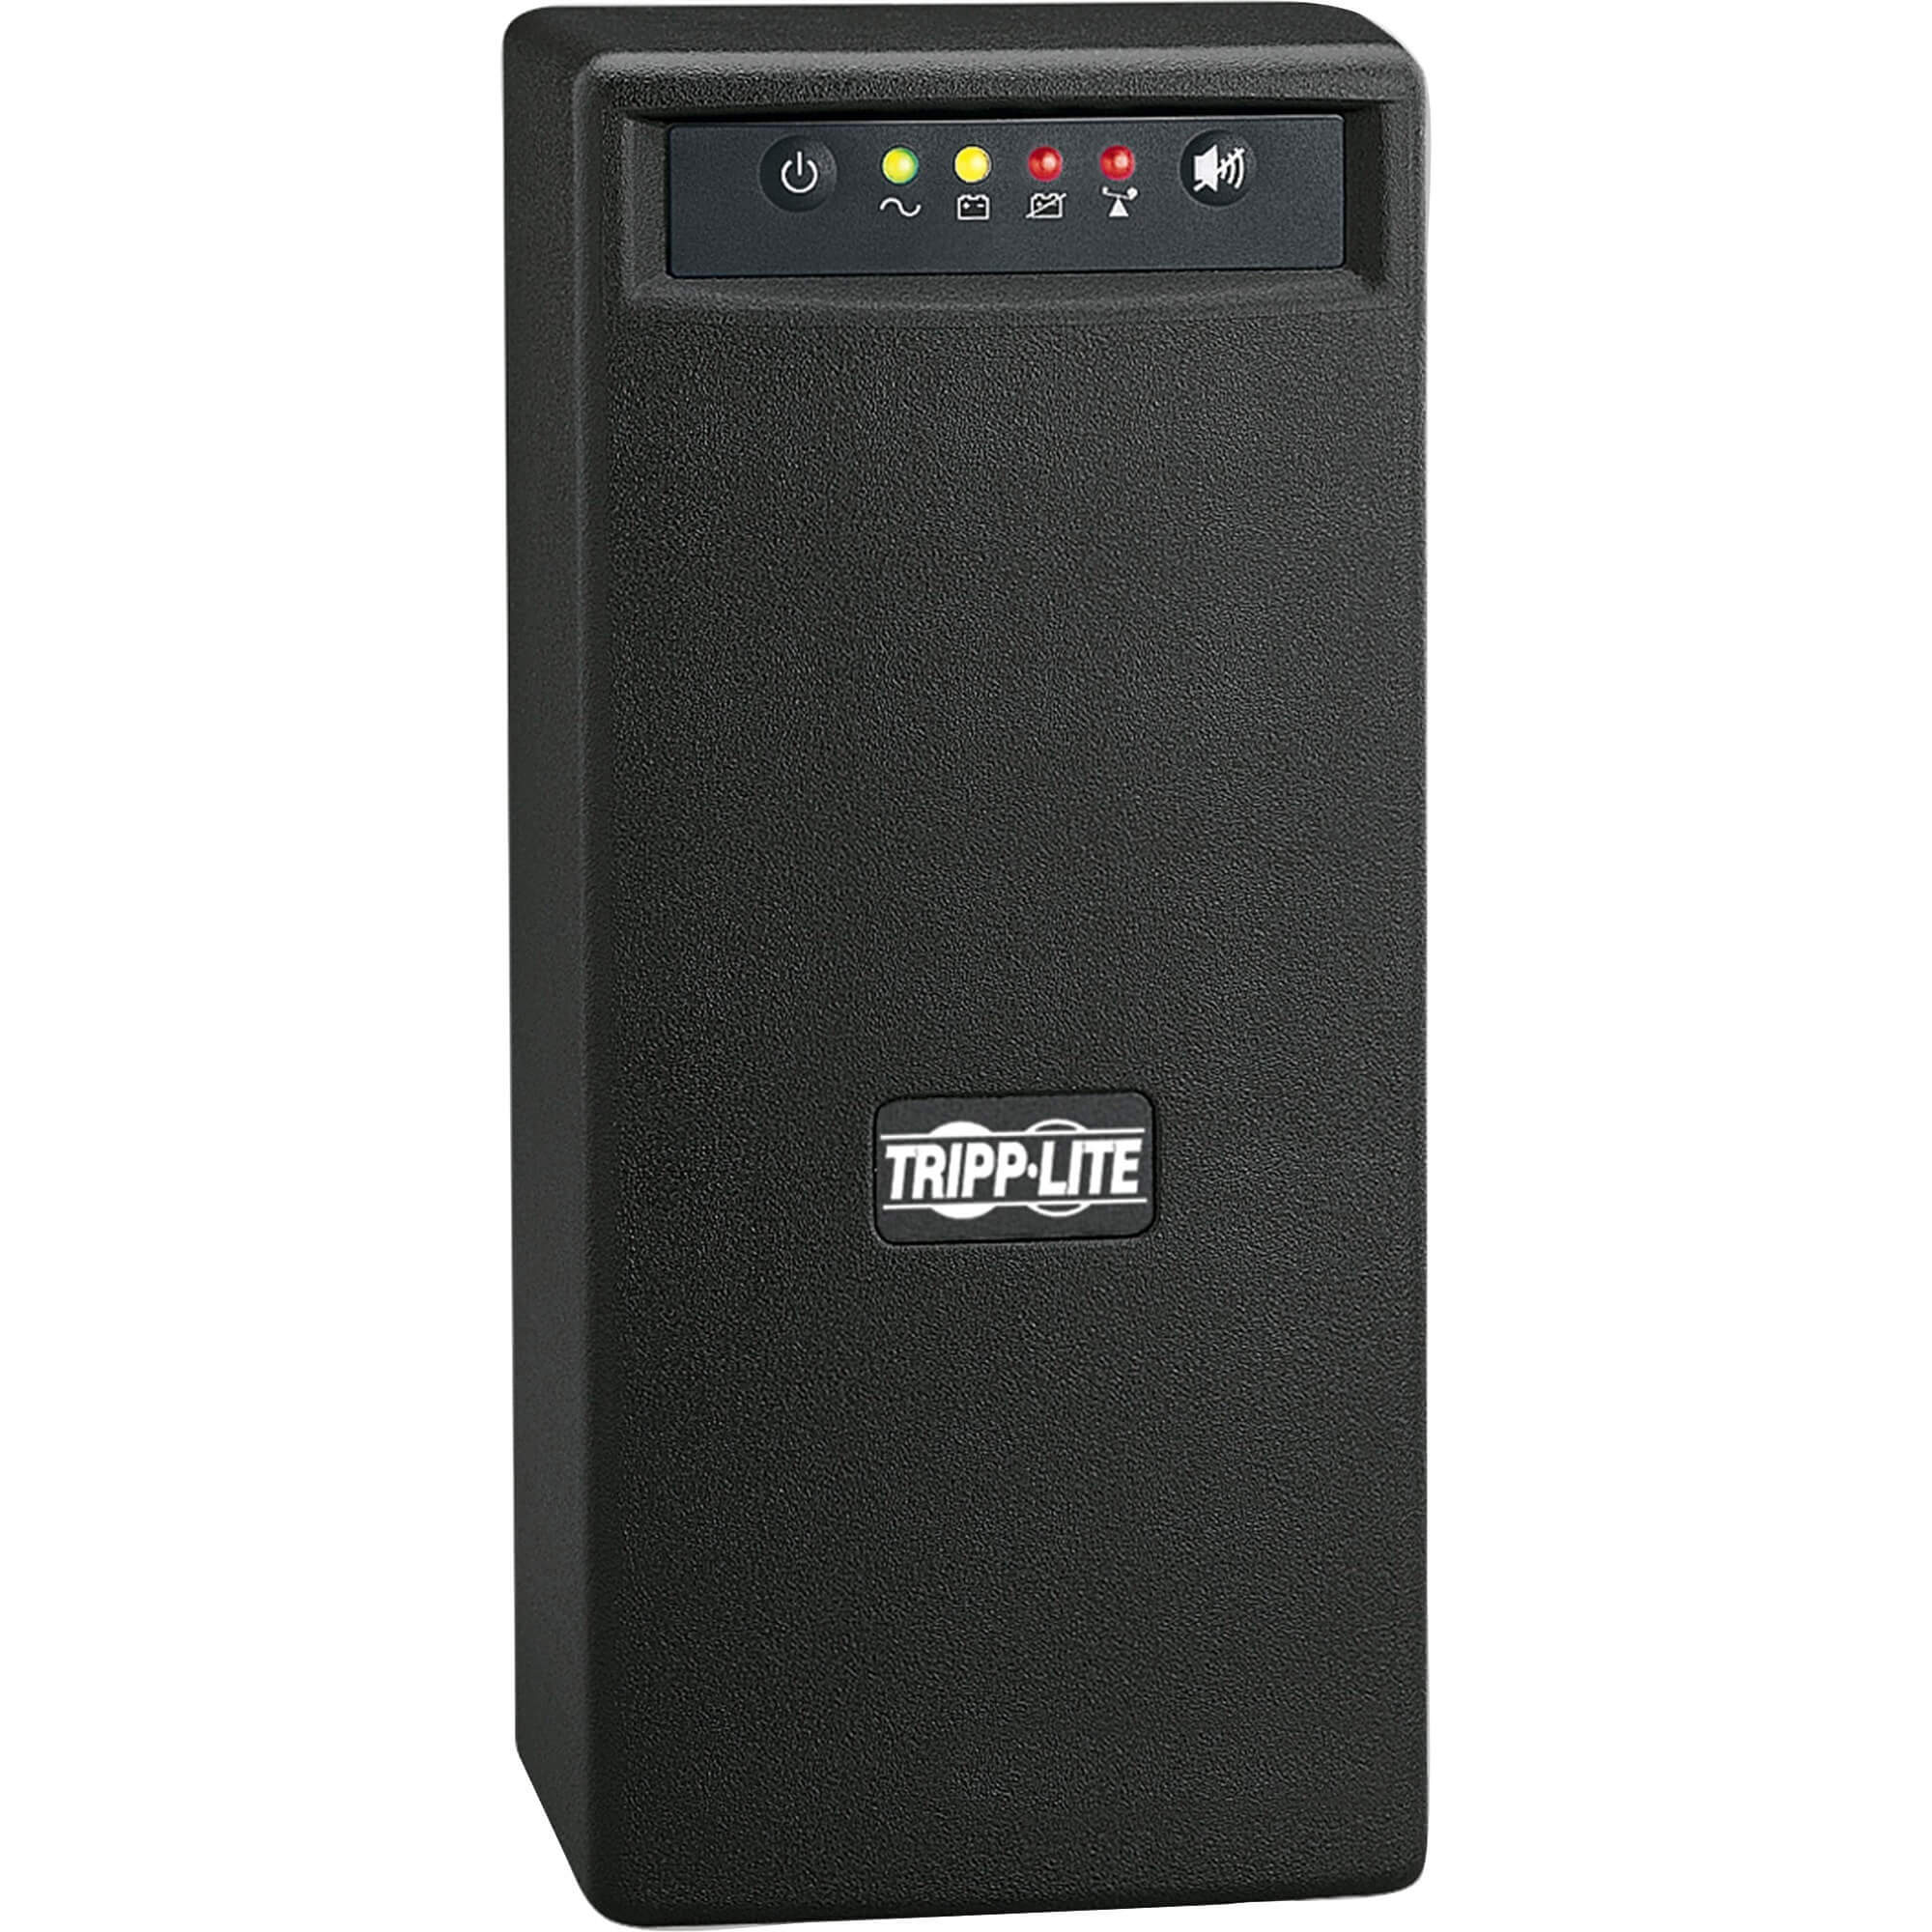 Tripp Lite 900VA UPS Battery Back-Up